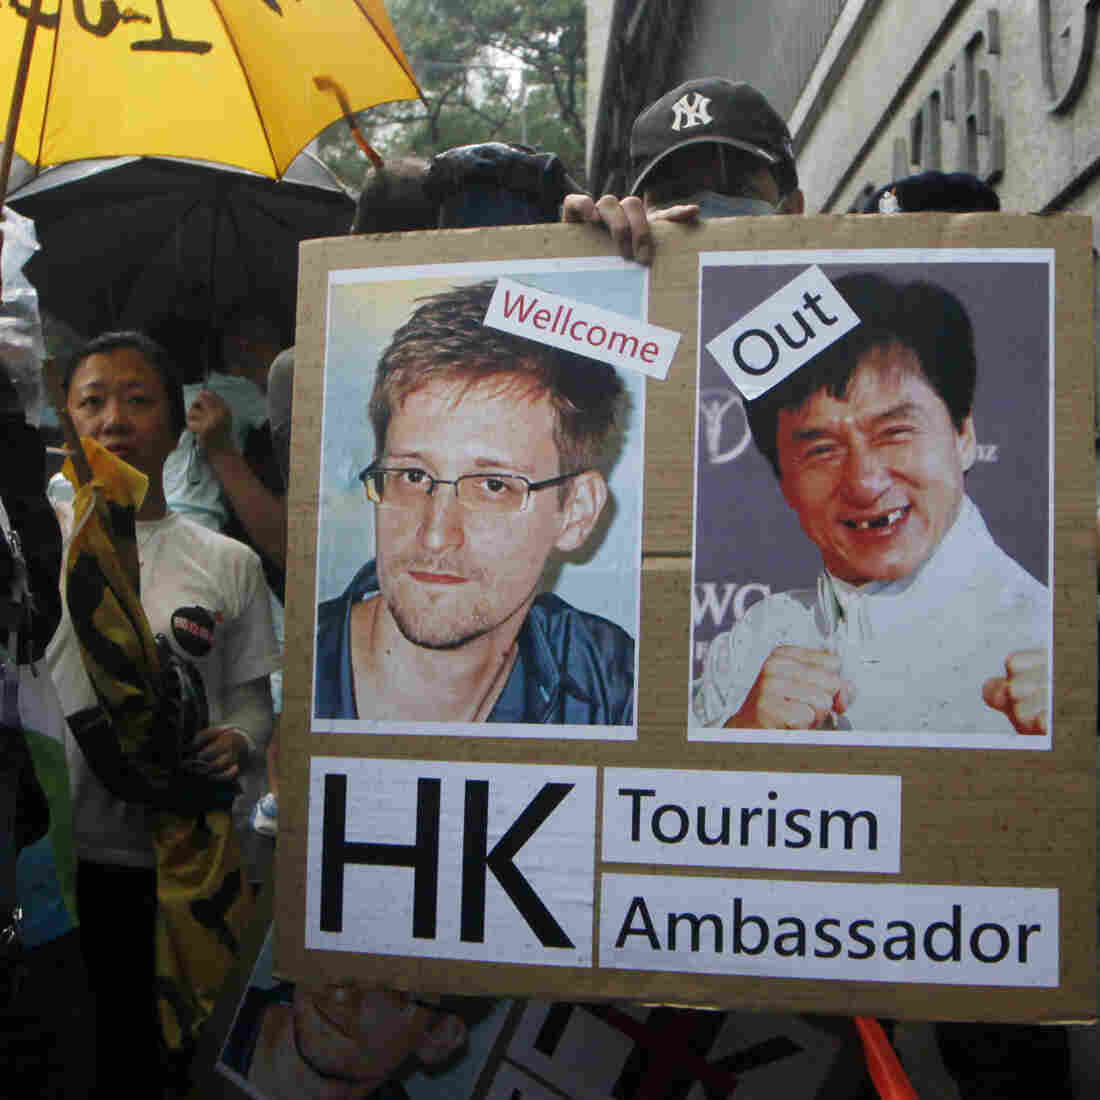 A supporter holds a sign with pictures of Edward Snowden, the former National Security Agency contractor who leaked details about the agency's surveillance programs, and Hong Kong movie star Jackie Chan during a protest outside the Consulate General of the United States in Hong Kong on June 15. Snowden has been holed up in Hong Kong since the leaks.